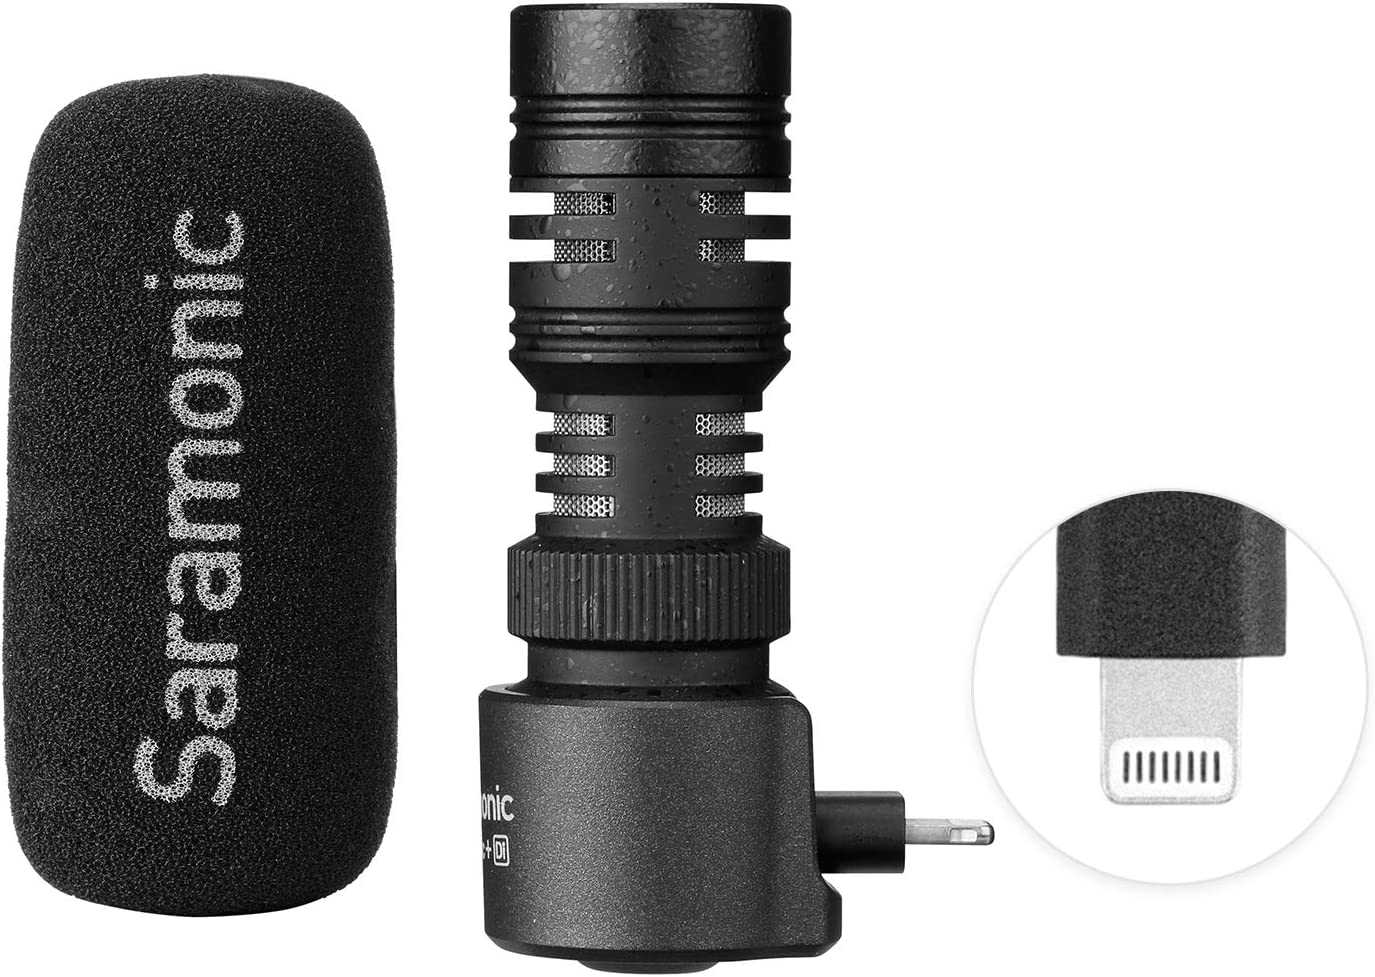 Saramonic SmartMic+ Di Compact Directional Microphone with Lightning Connector Compatible With Apple iPhone and iPad with Foam Windscreen